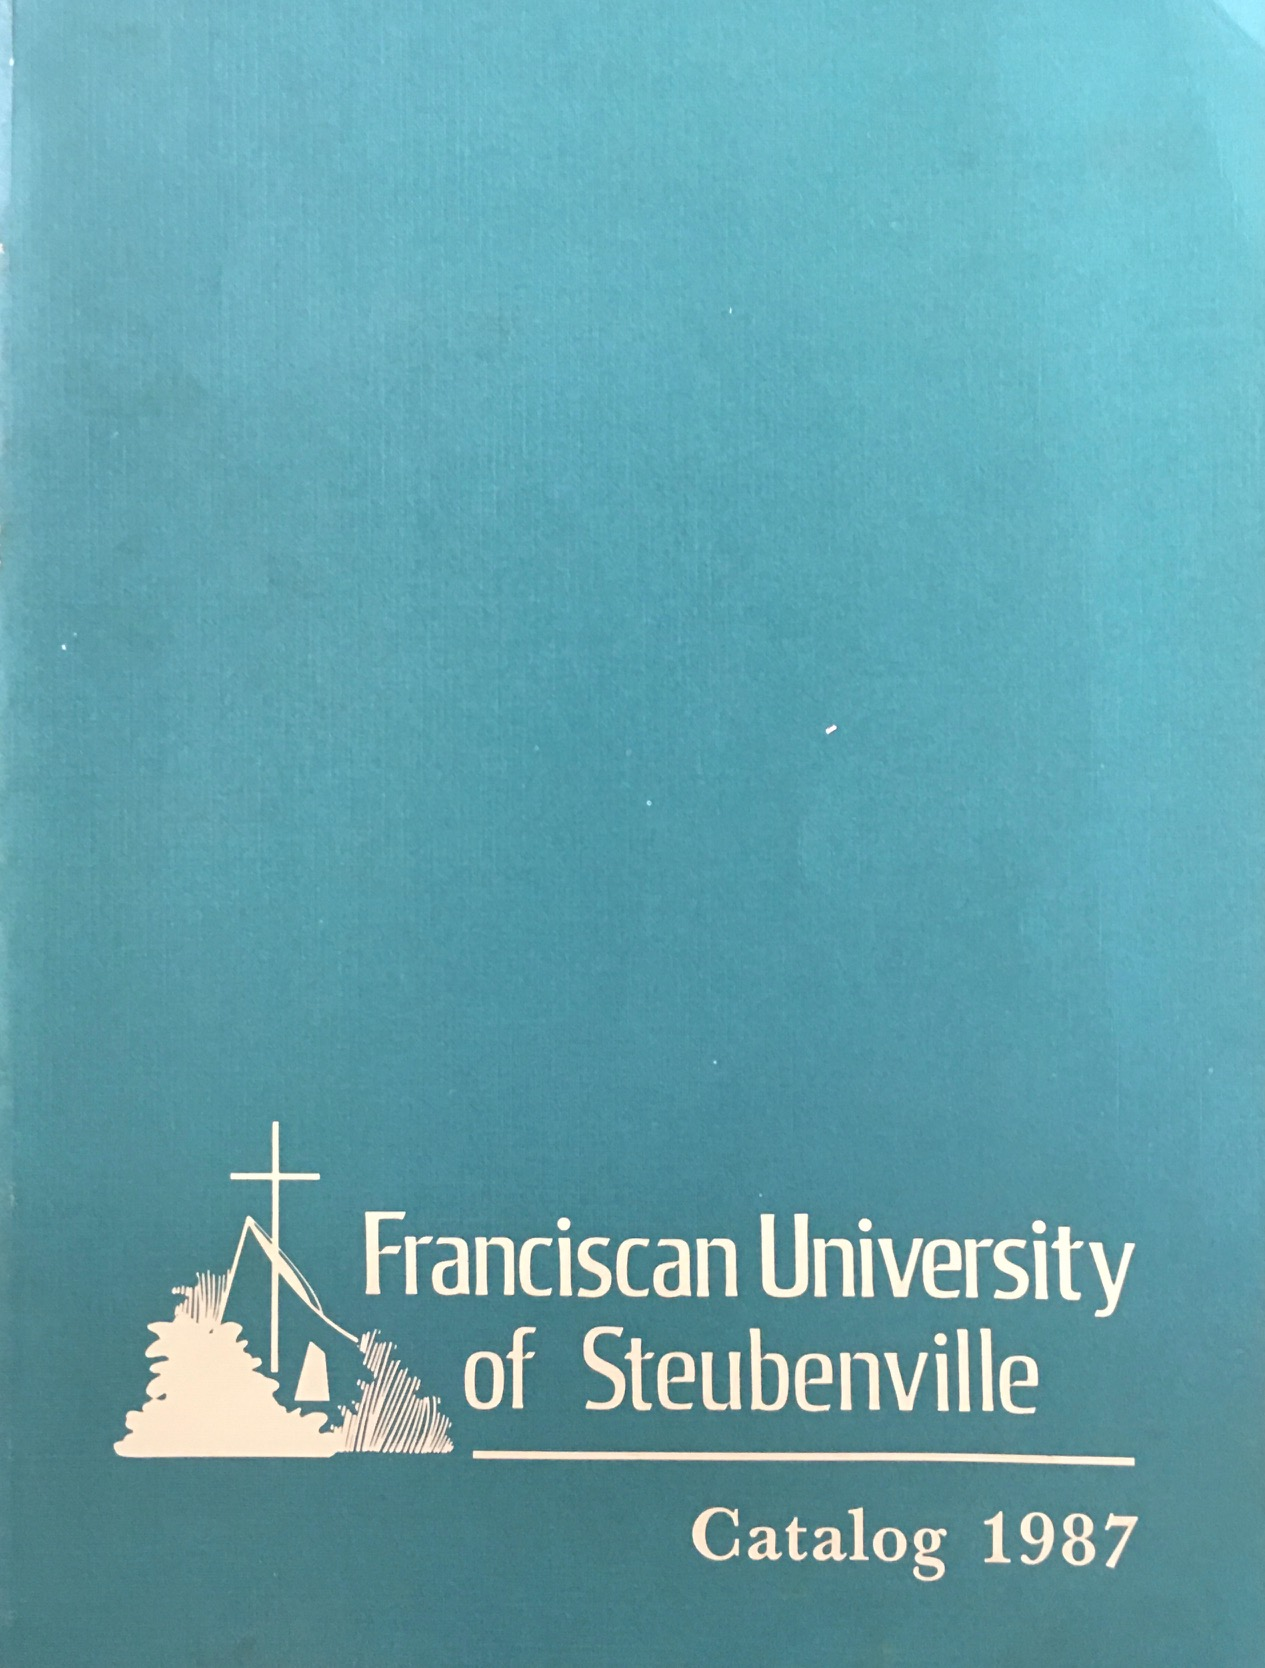 Image for Franciscan University of Steubenville Catalog 1987